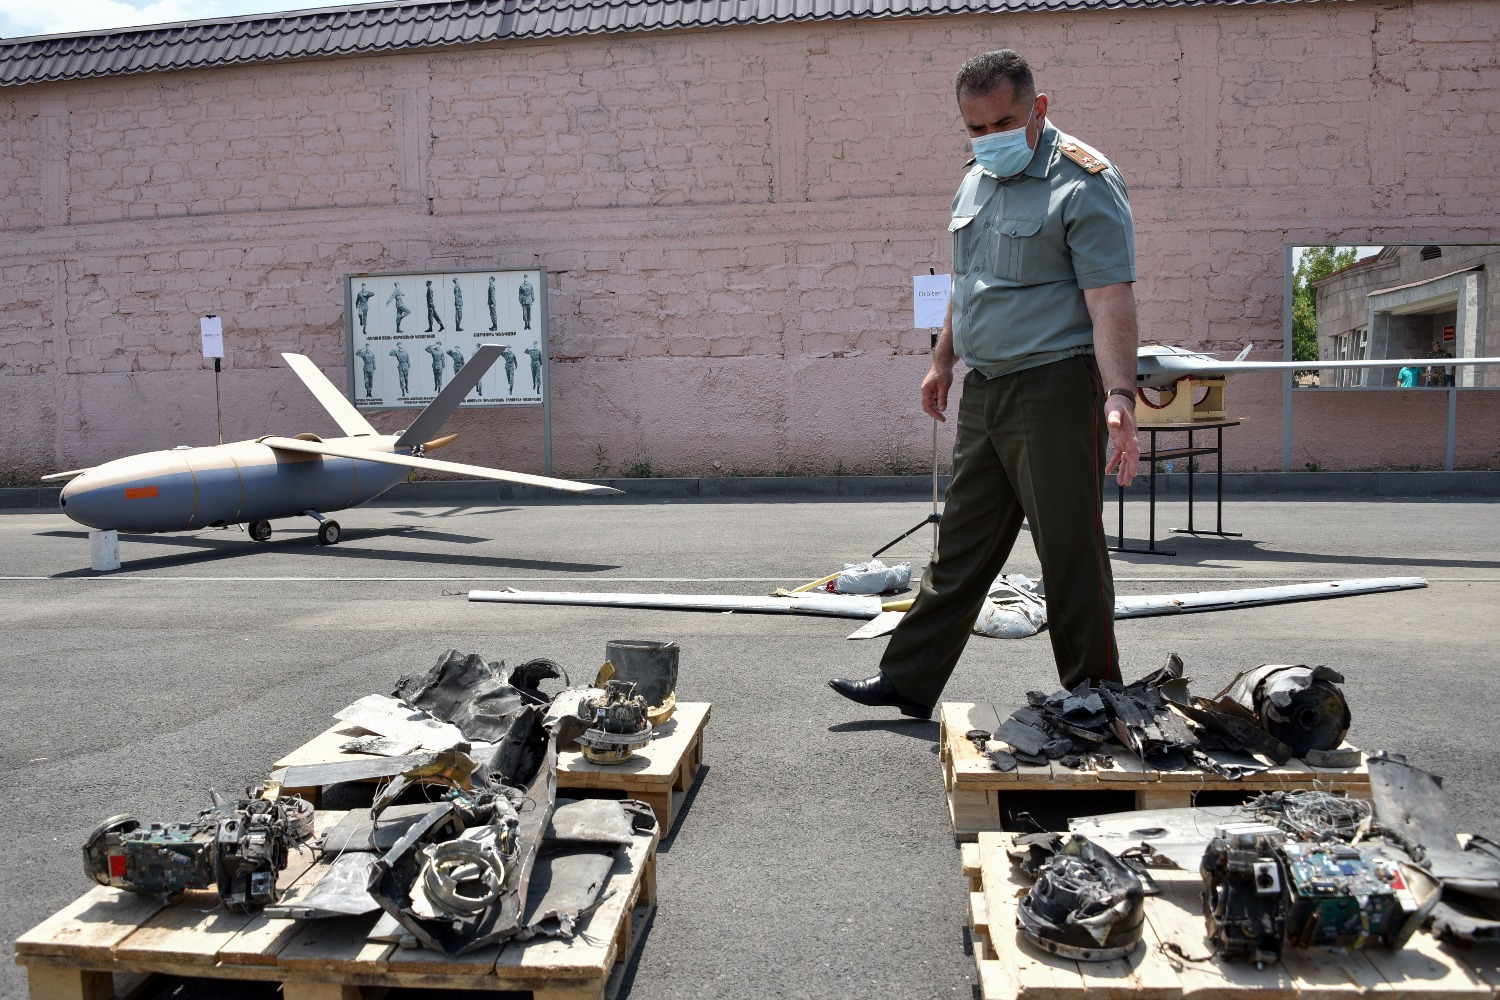 An official walks among objects that Armenia presented as captured and downed Azerbaijani drones.